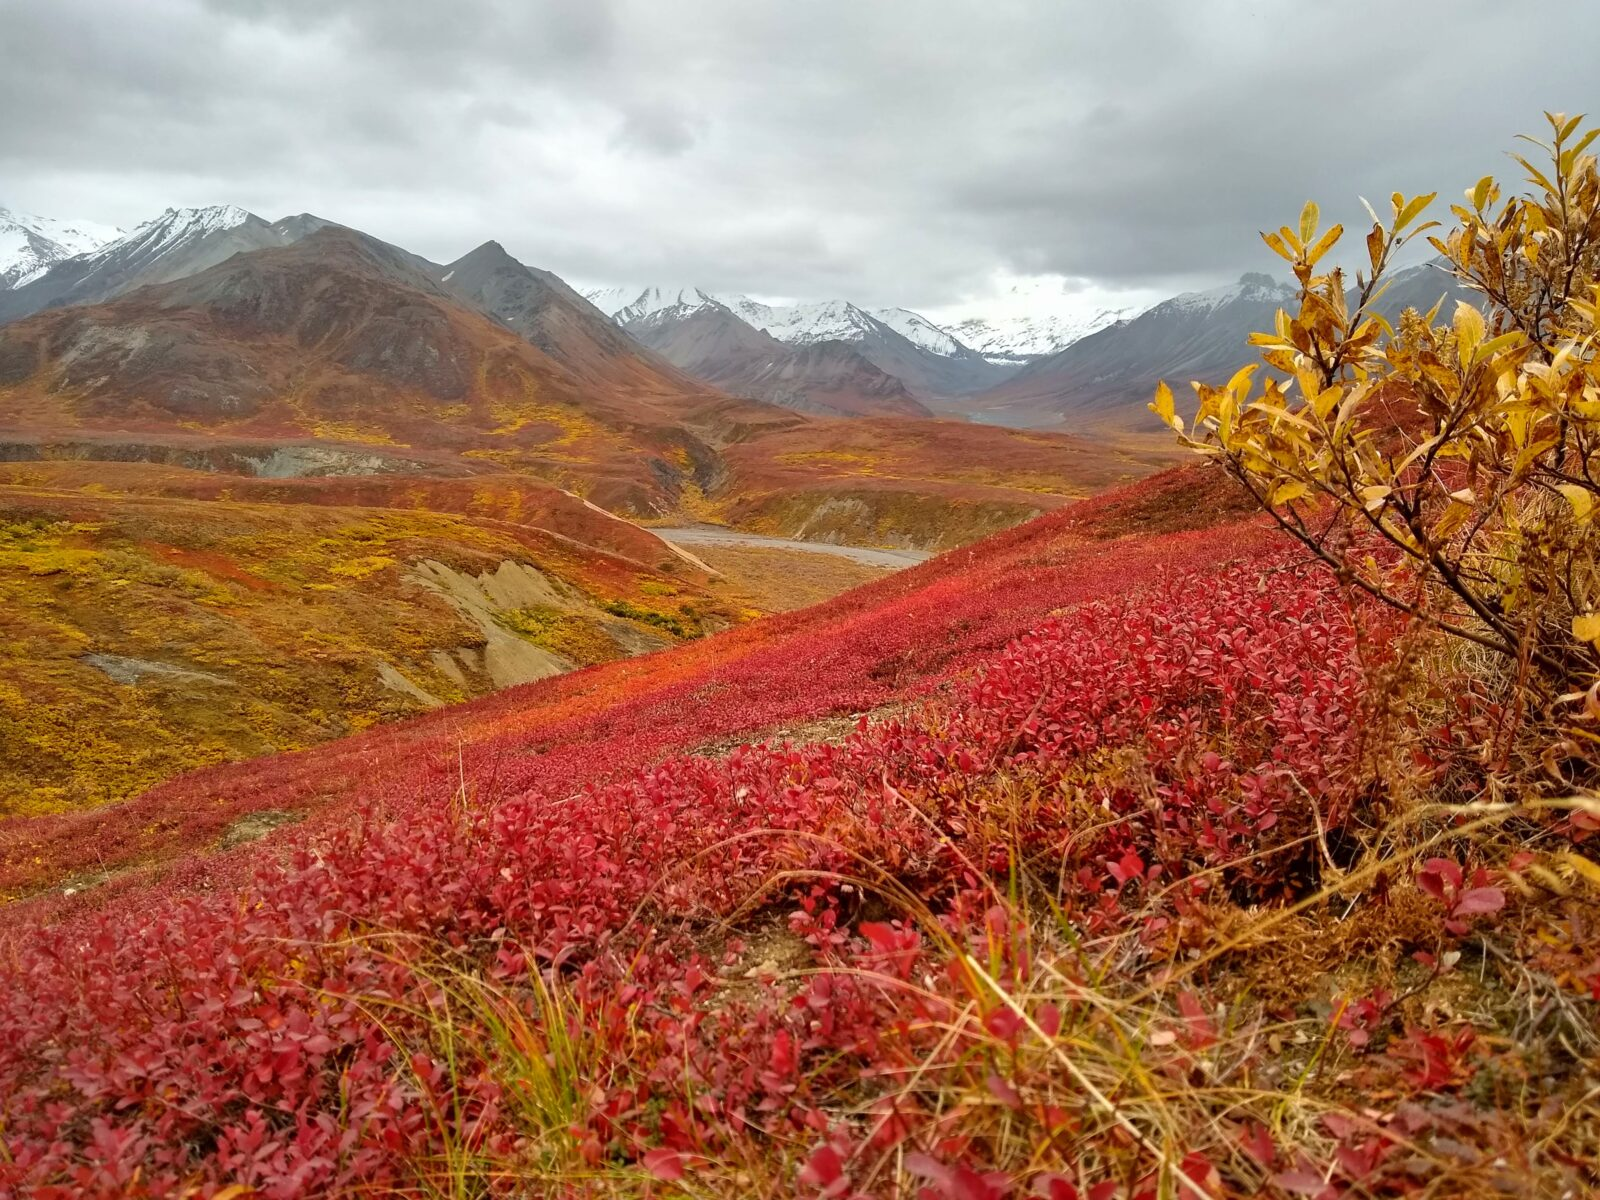 Distant snow capped mountains on a cloudy day, brilliant fall tundra colors in the foreground in Denali National Park.